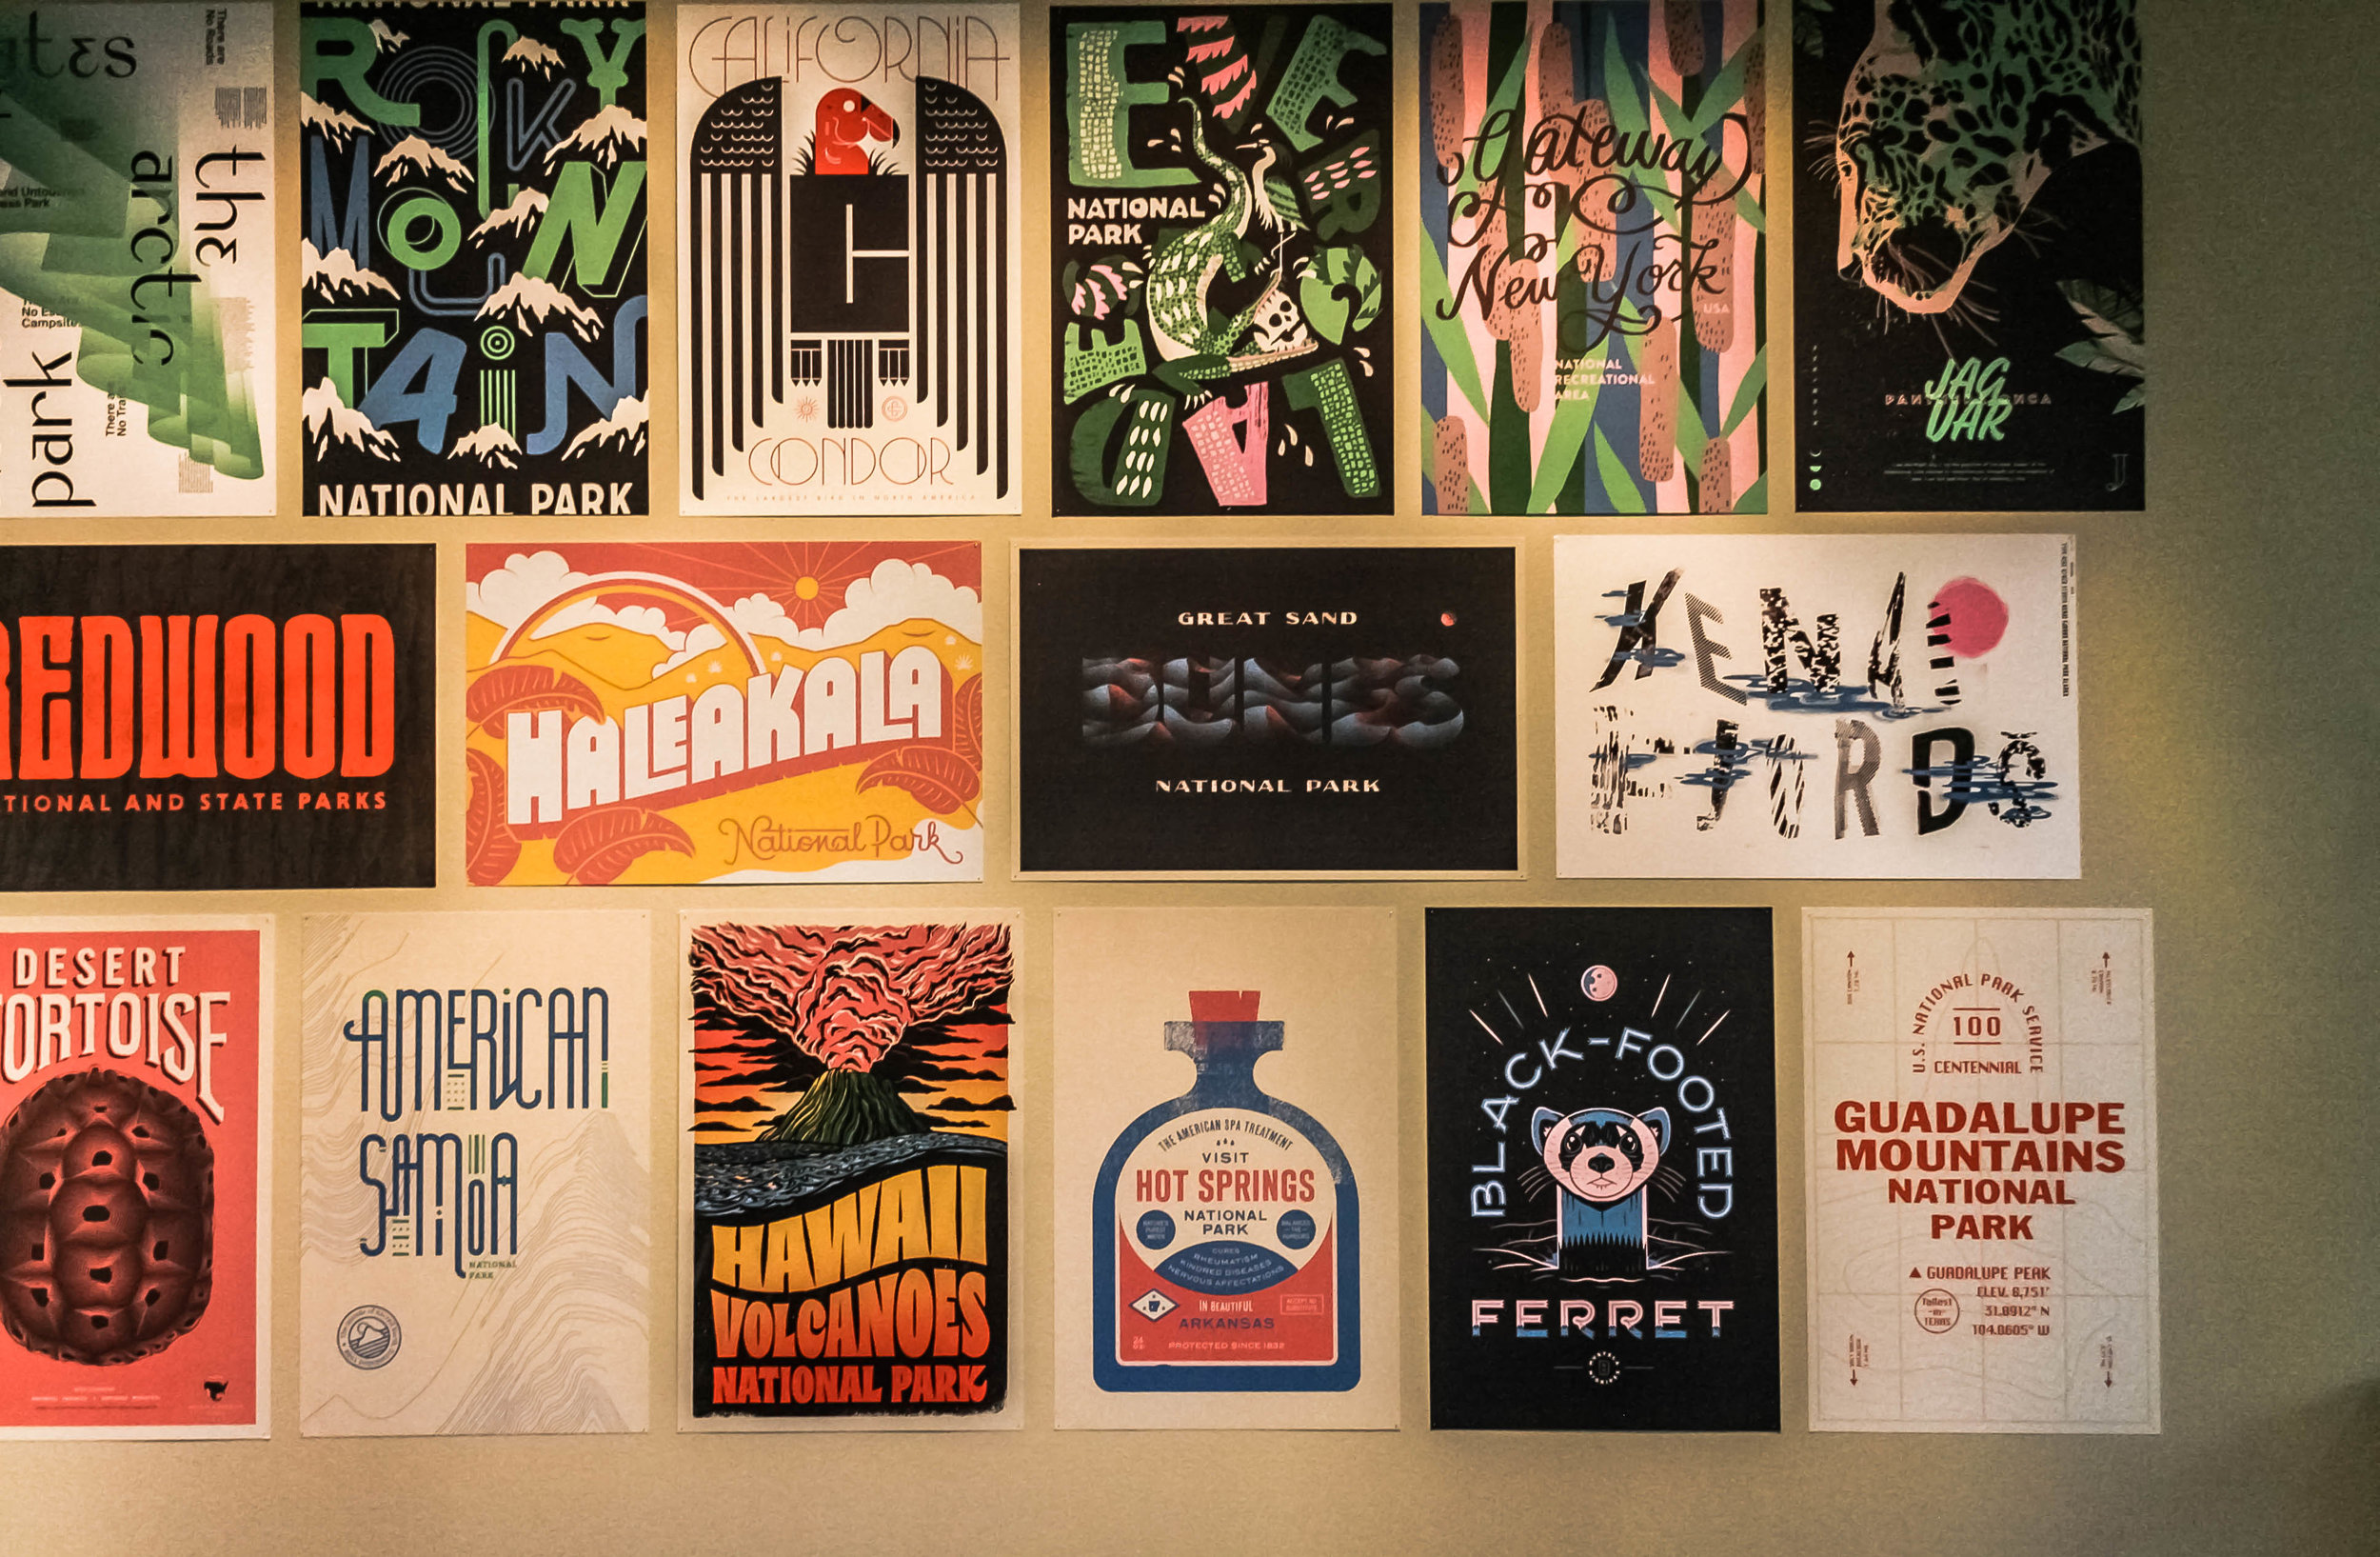 The California Condor poster was created by Austin-based designer and illustrator Steve Wolf. (upper row, middle)